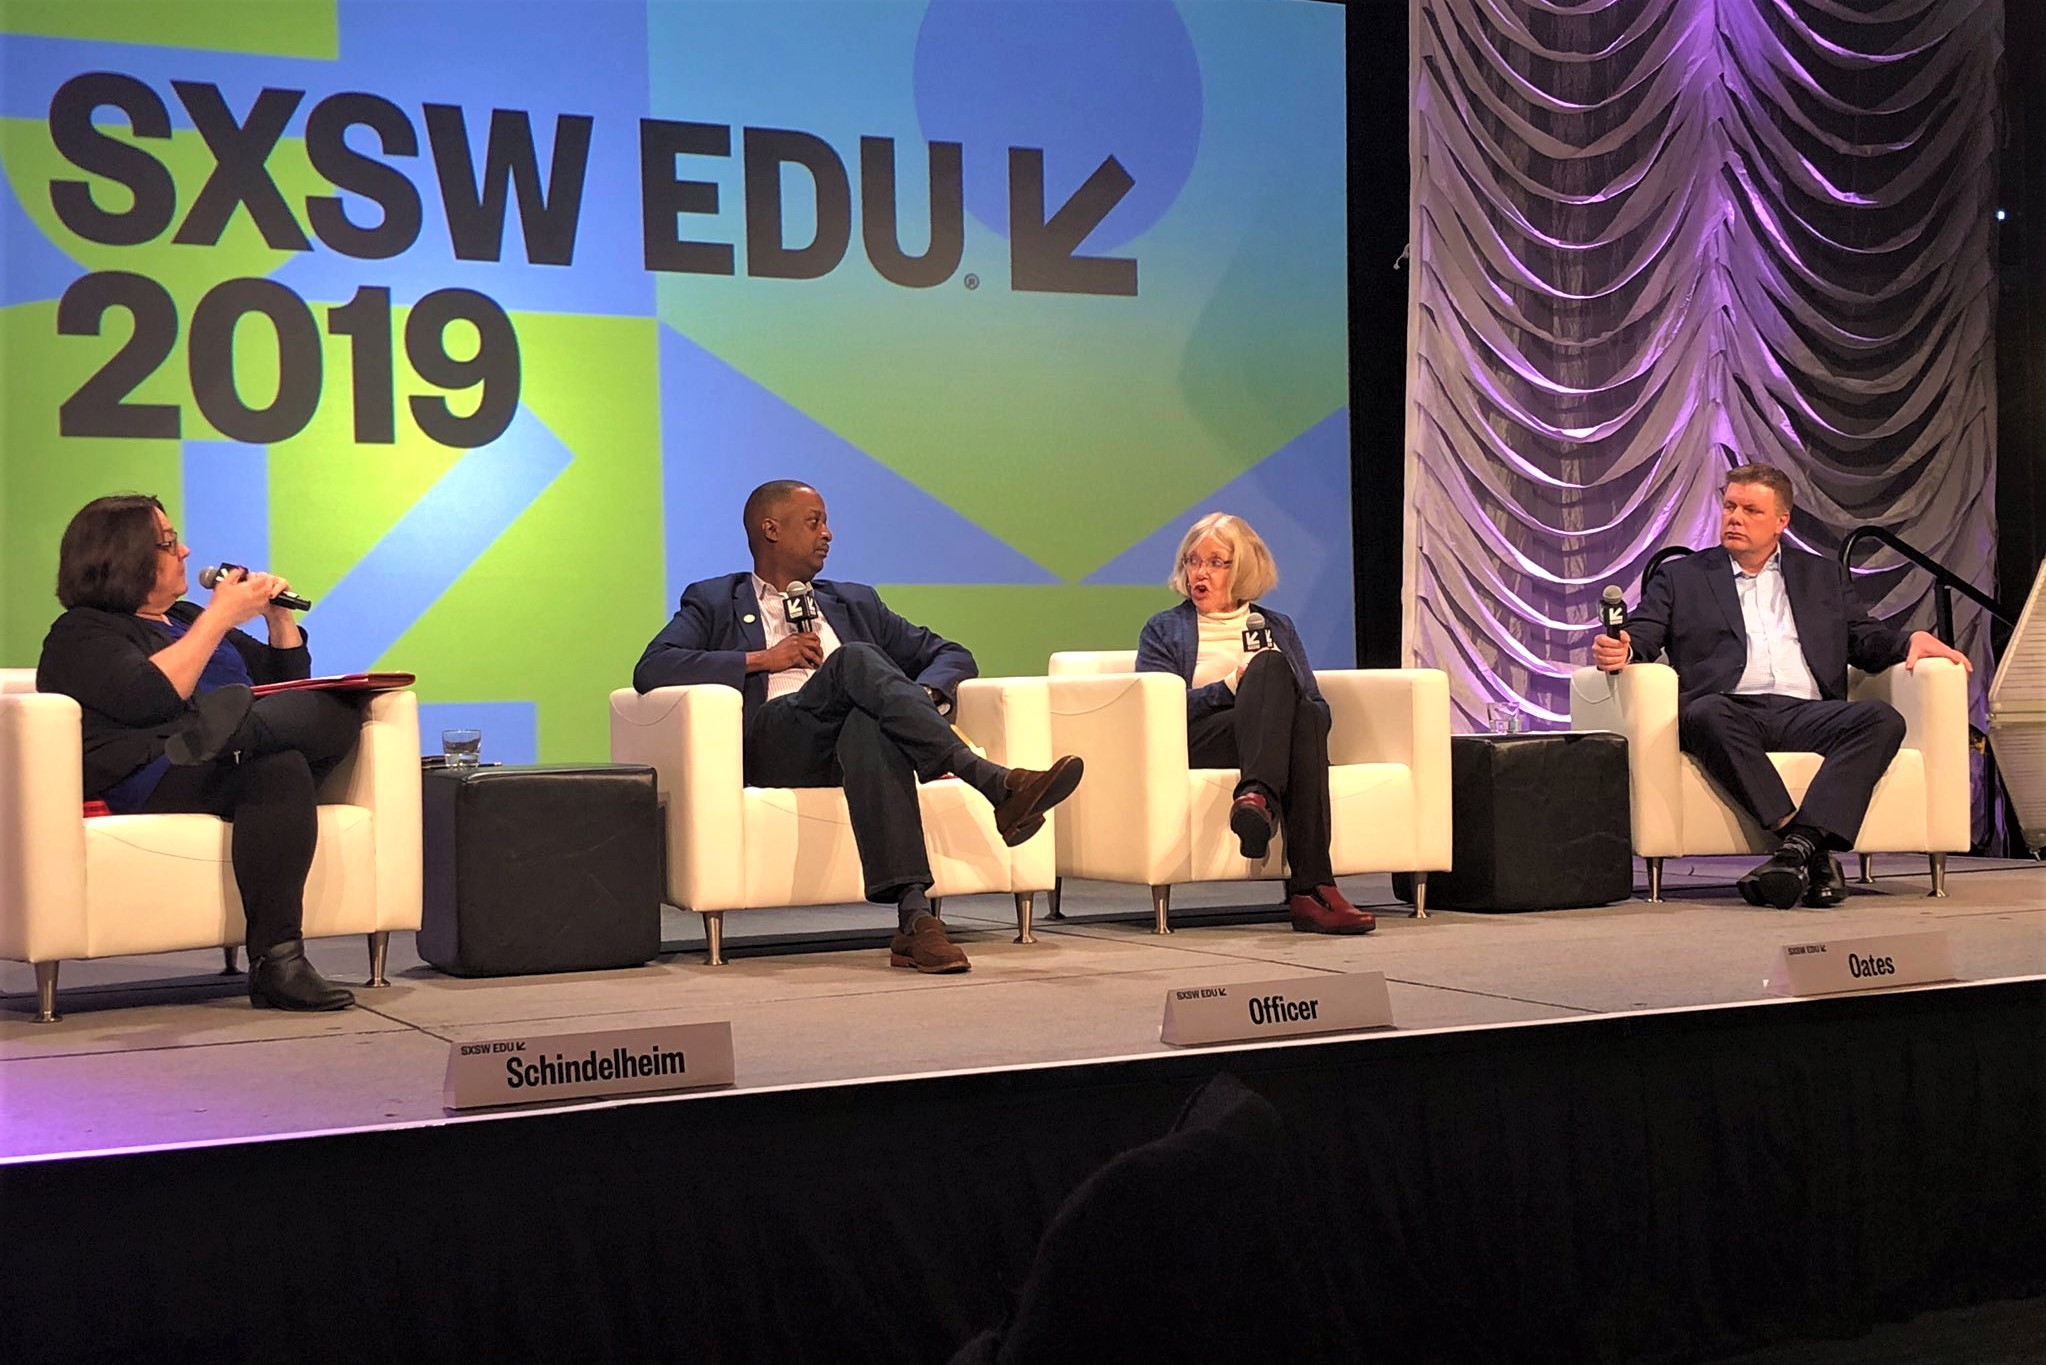 Panel on stage at SXSW EDU